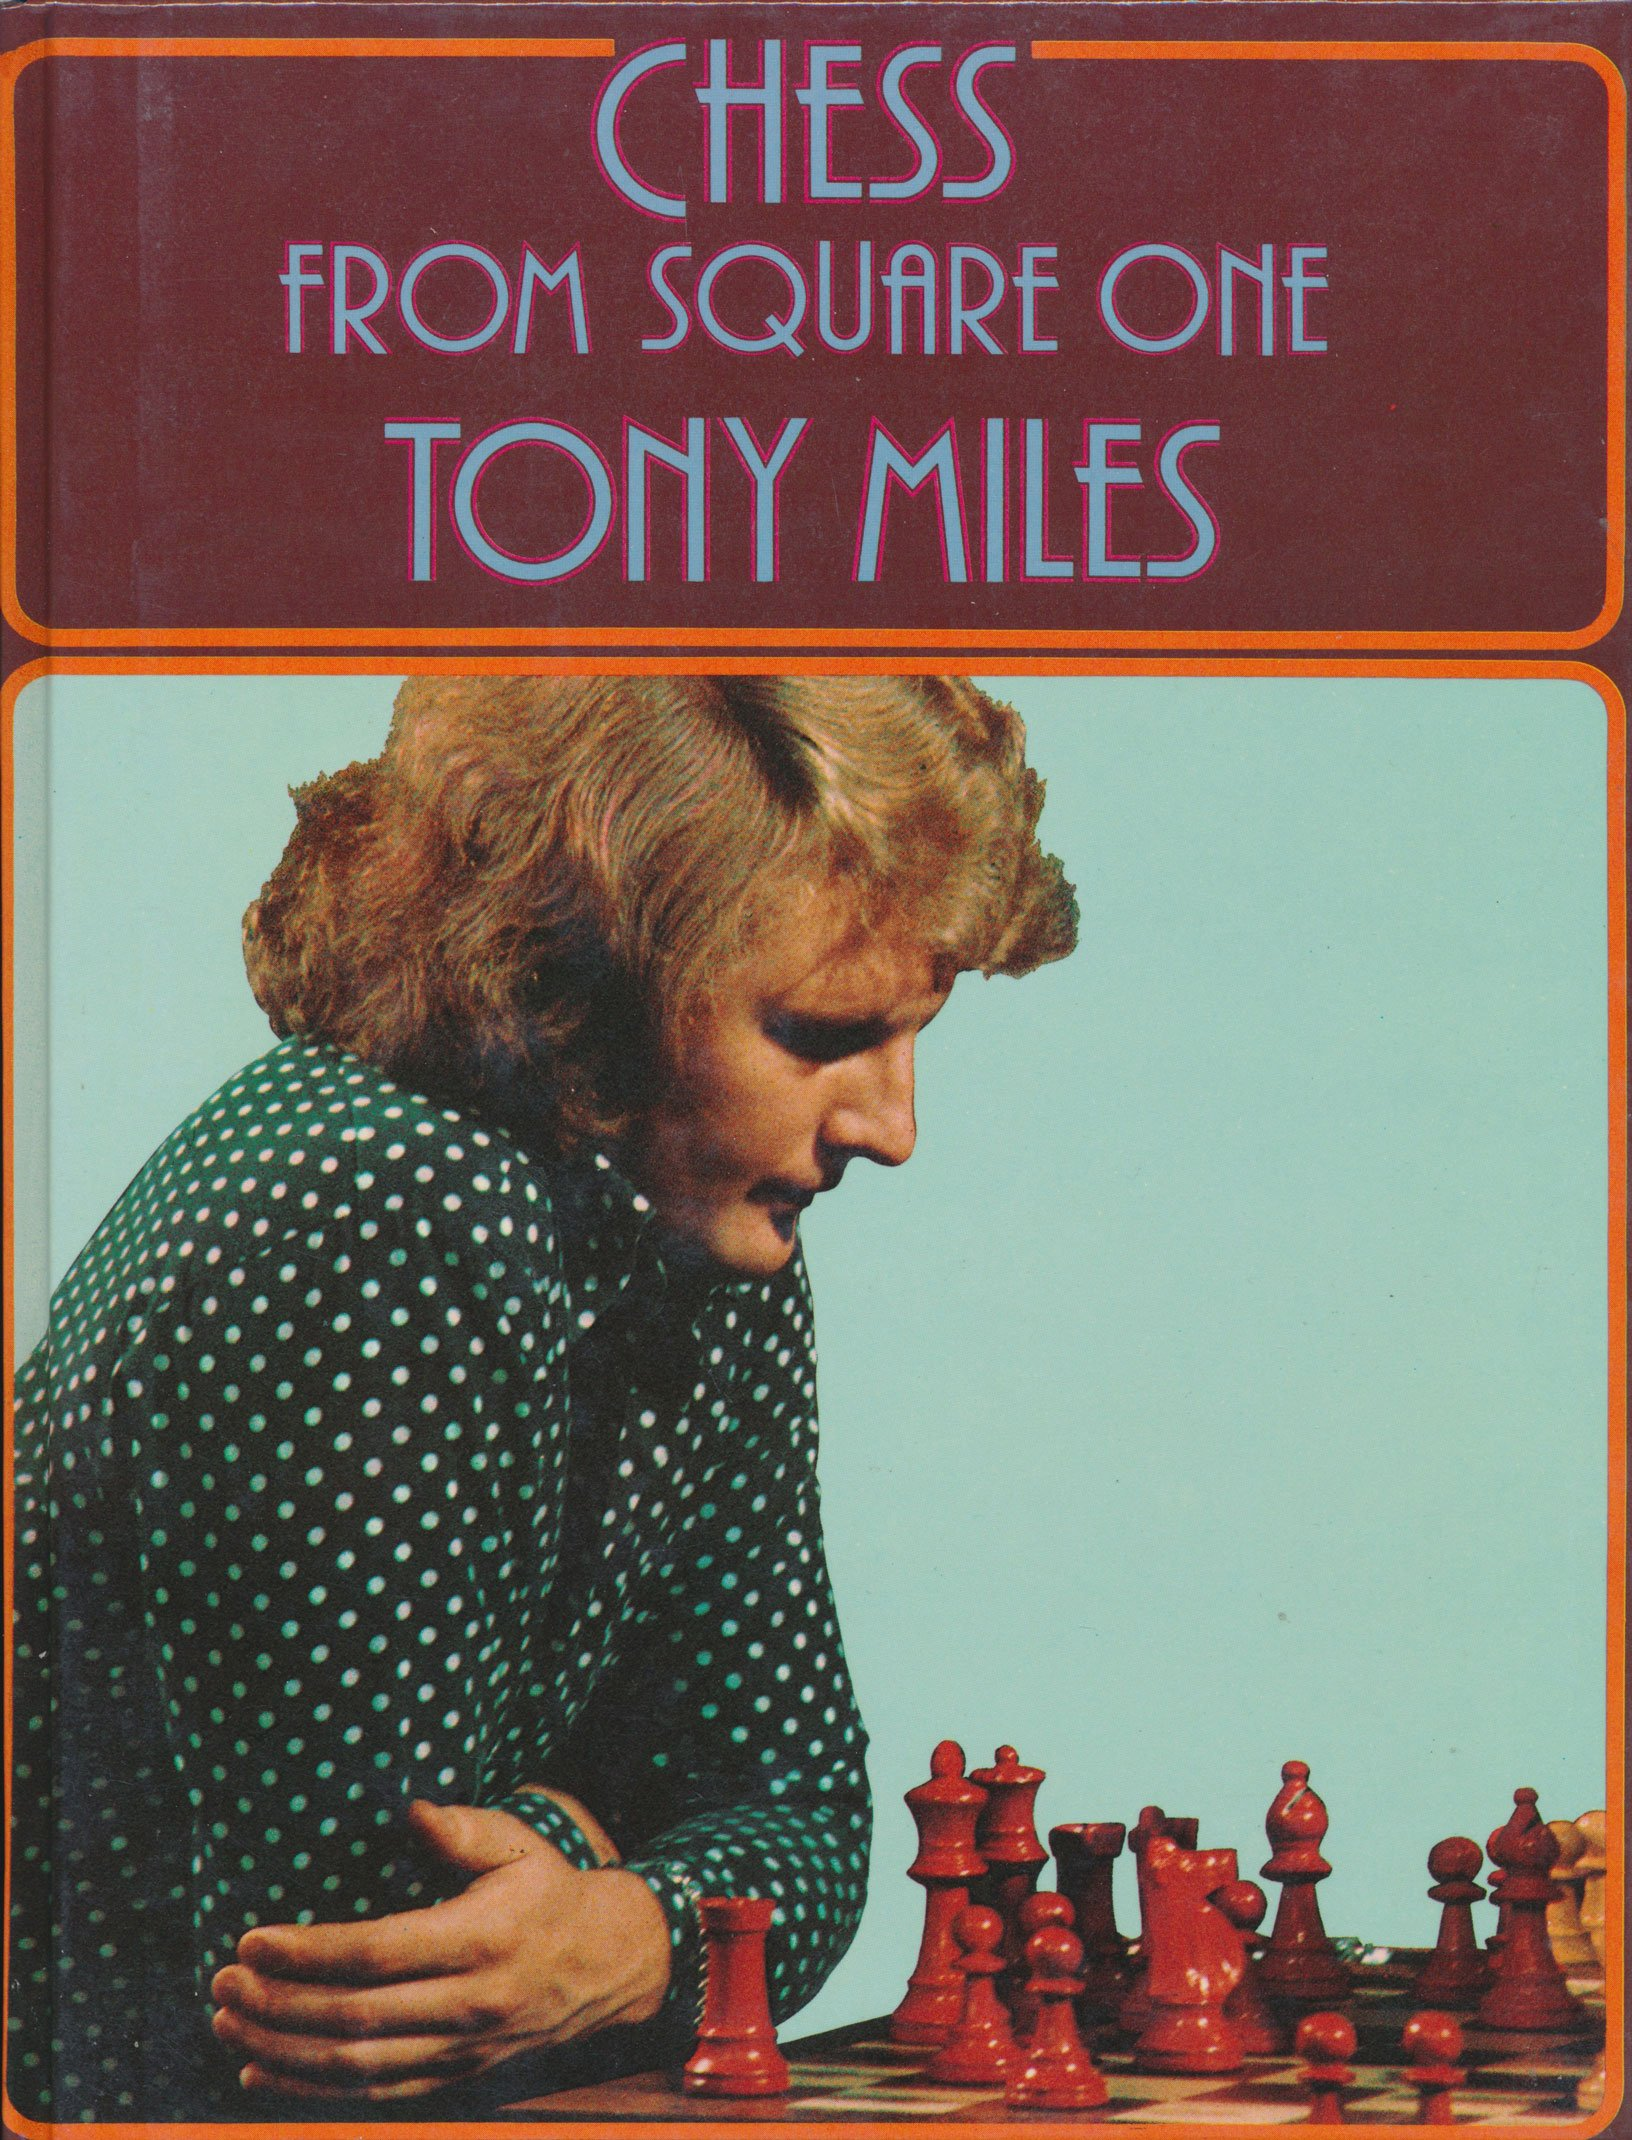 Chess from Square One, AJ Miles, Harper Collins, November 1979, ISBN 0713511168